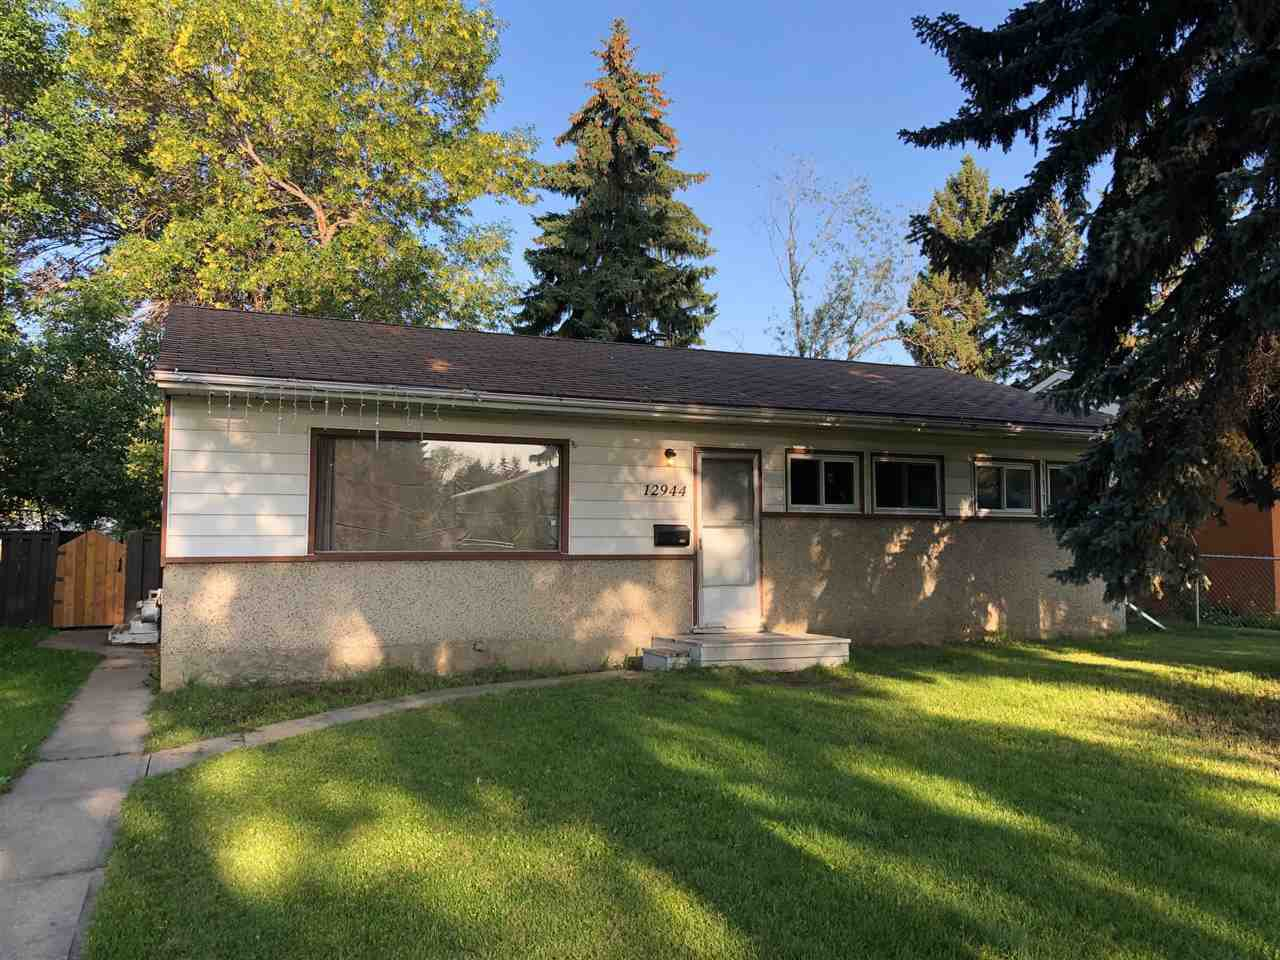 Main Photo: 12944 114 Street in Edmonton: Zone 01 House for sale : MLS®# E4170927